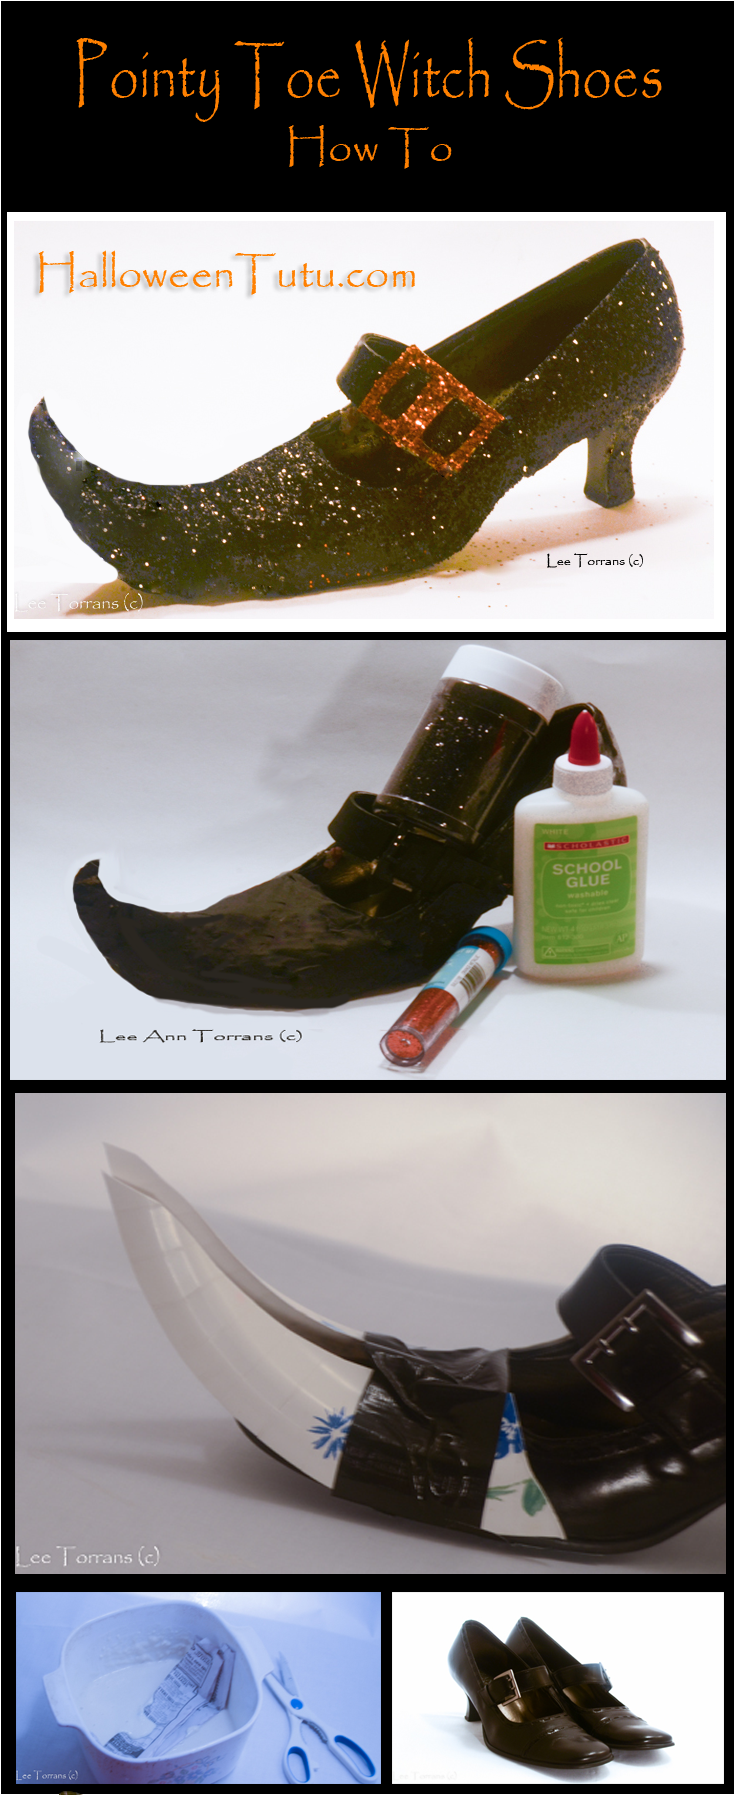 How to Make Pointy Toe Witch Shoes HalloweenTutu.com | Halloween ...